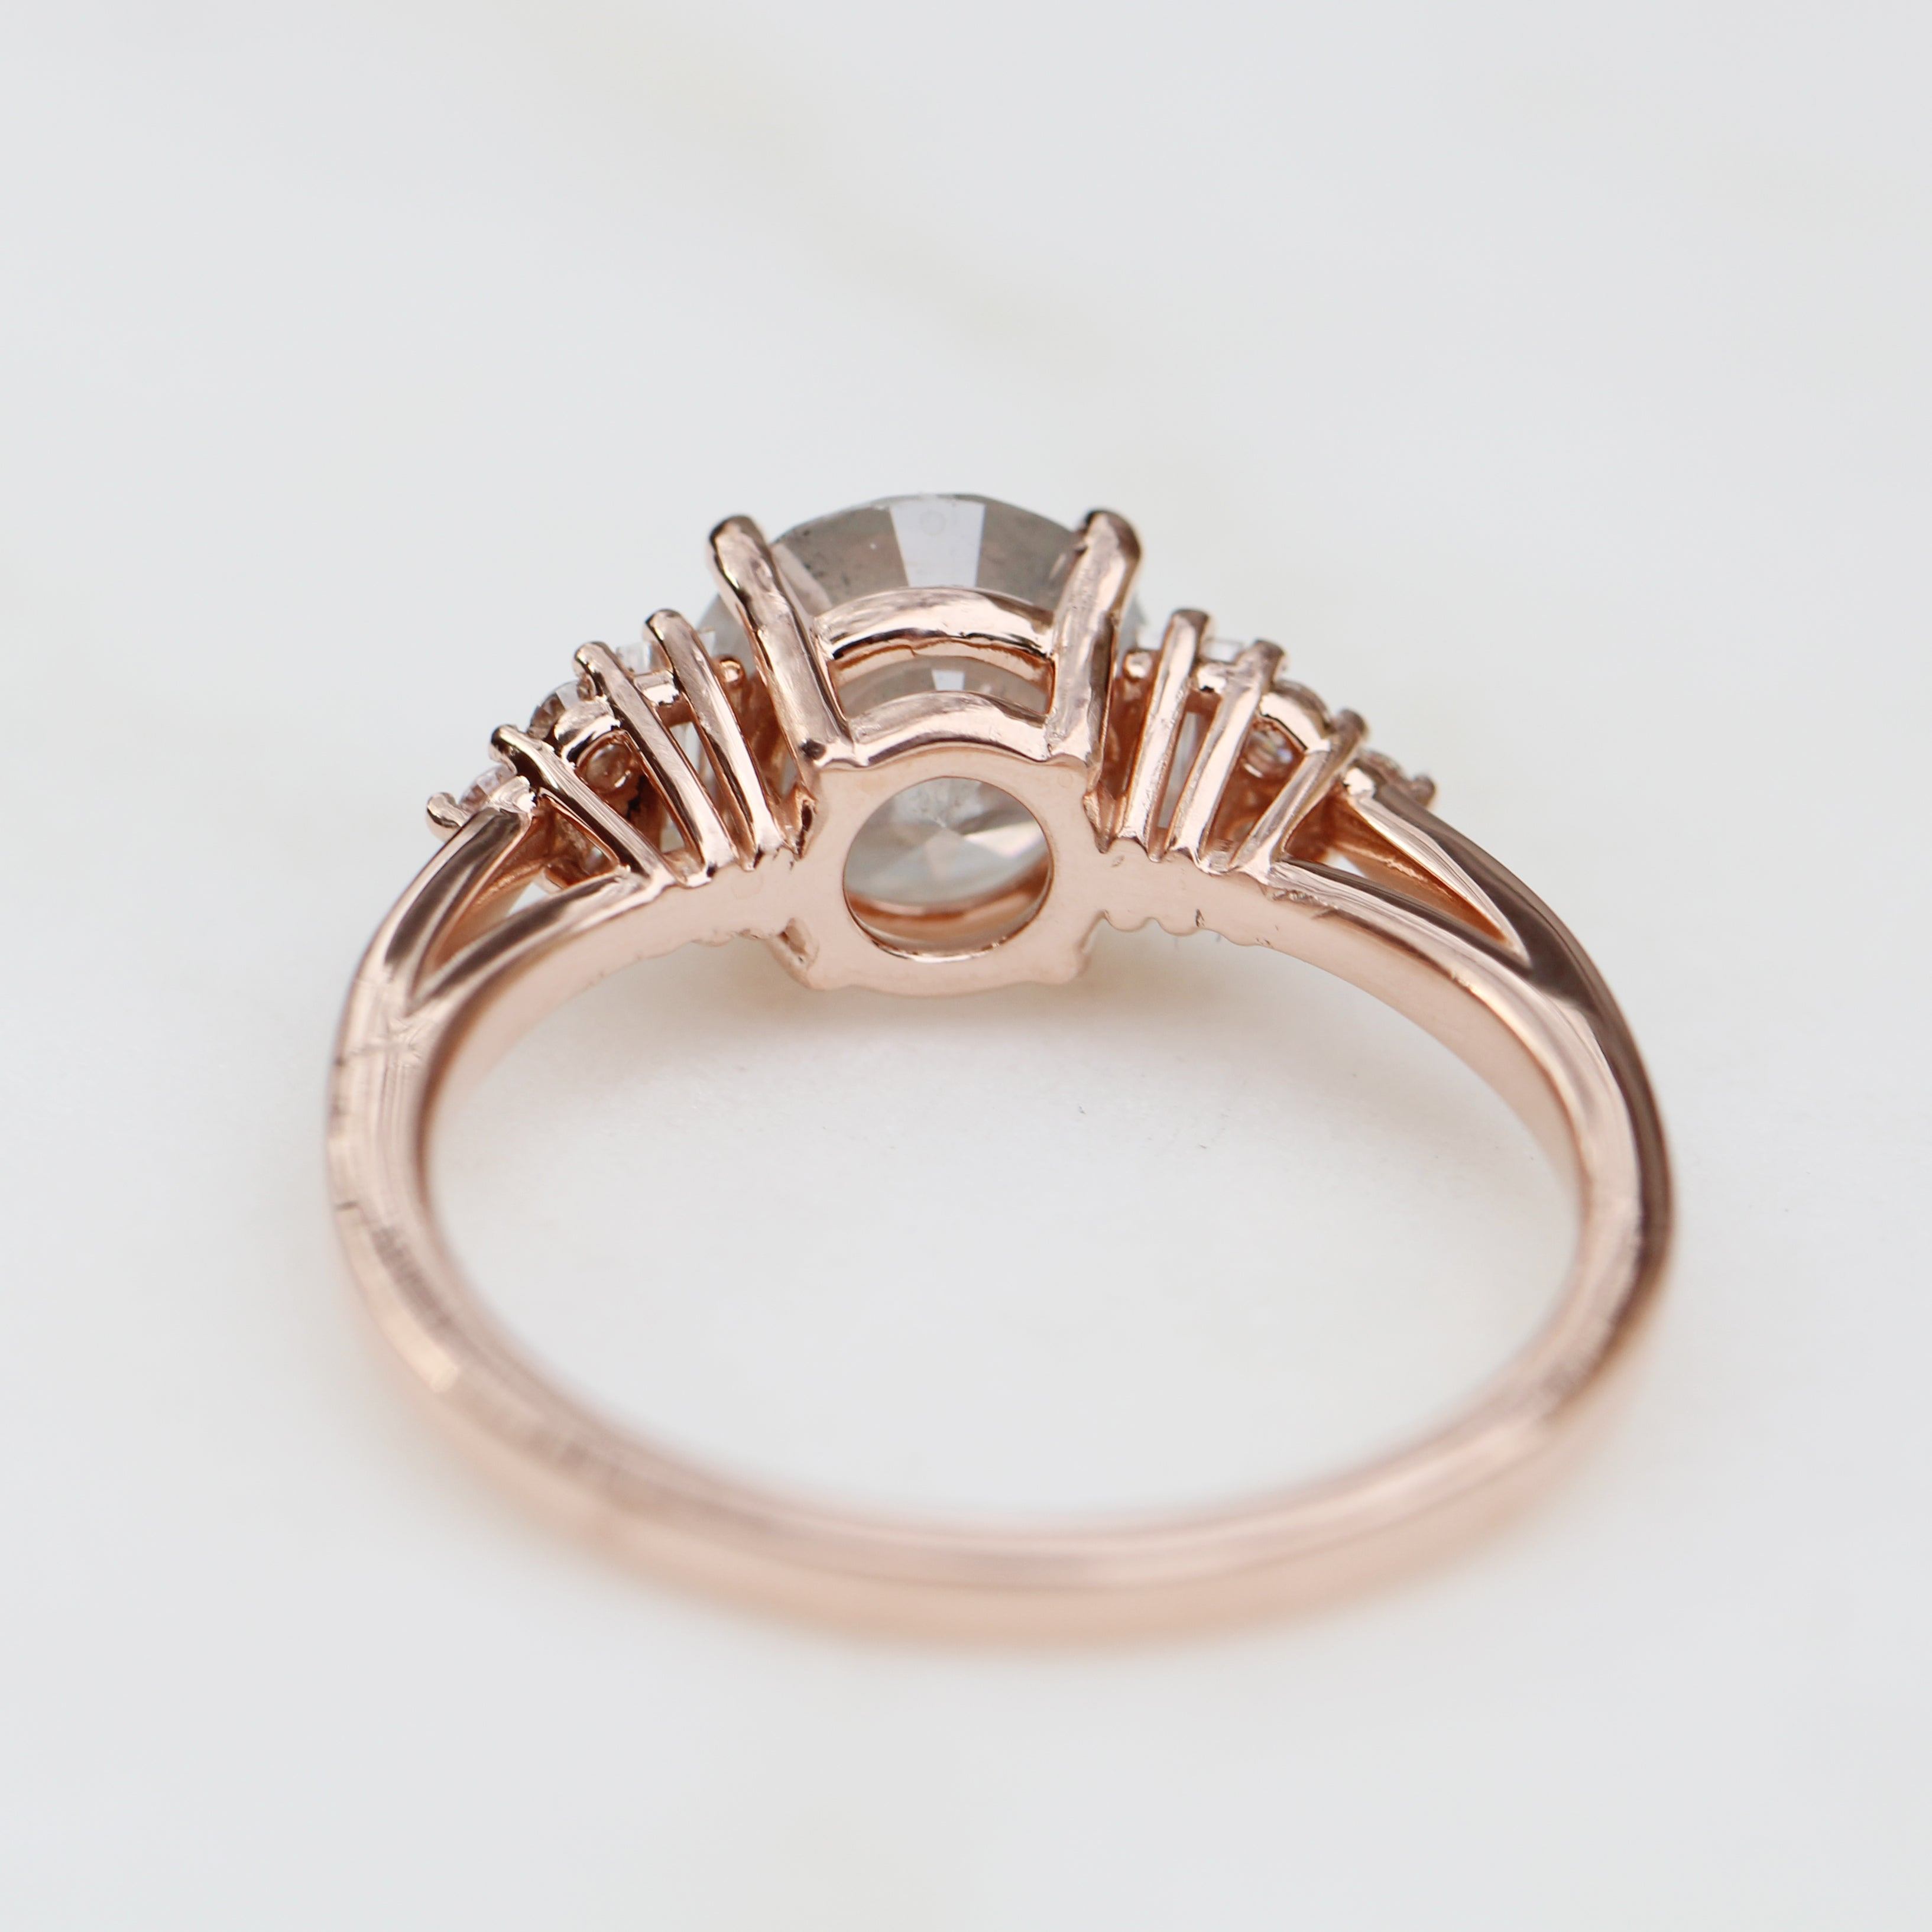 1.64 Carat Celestial Diamond Autumn Ring in 14k Rose Gold - Ready to size and ship - Midwinter Co. Alternative Bridal Rings and Modern Fine Jewelry